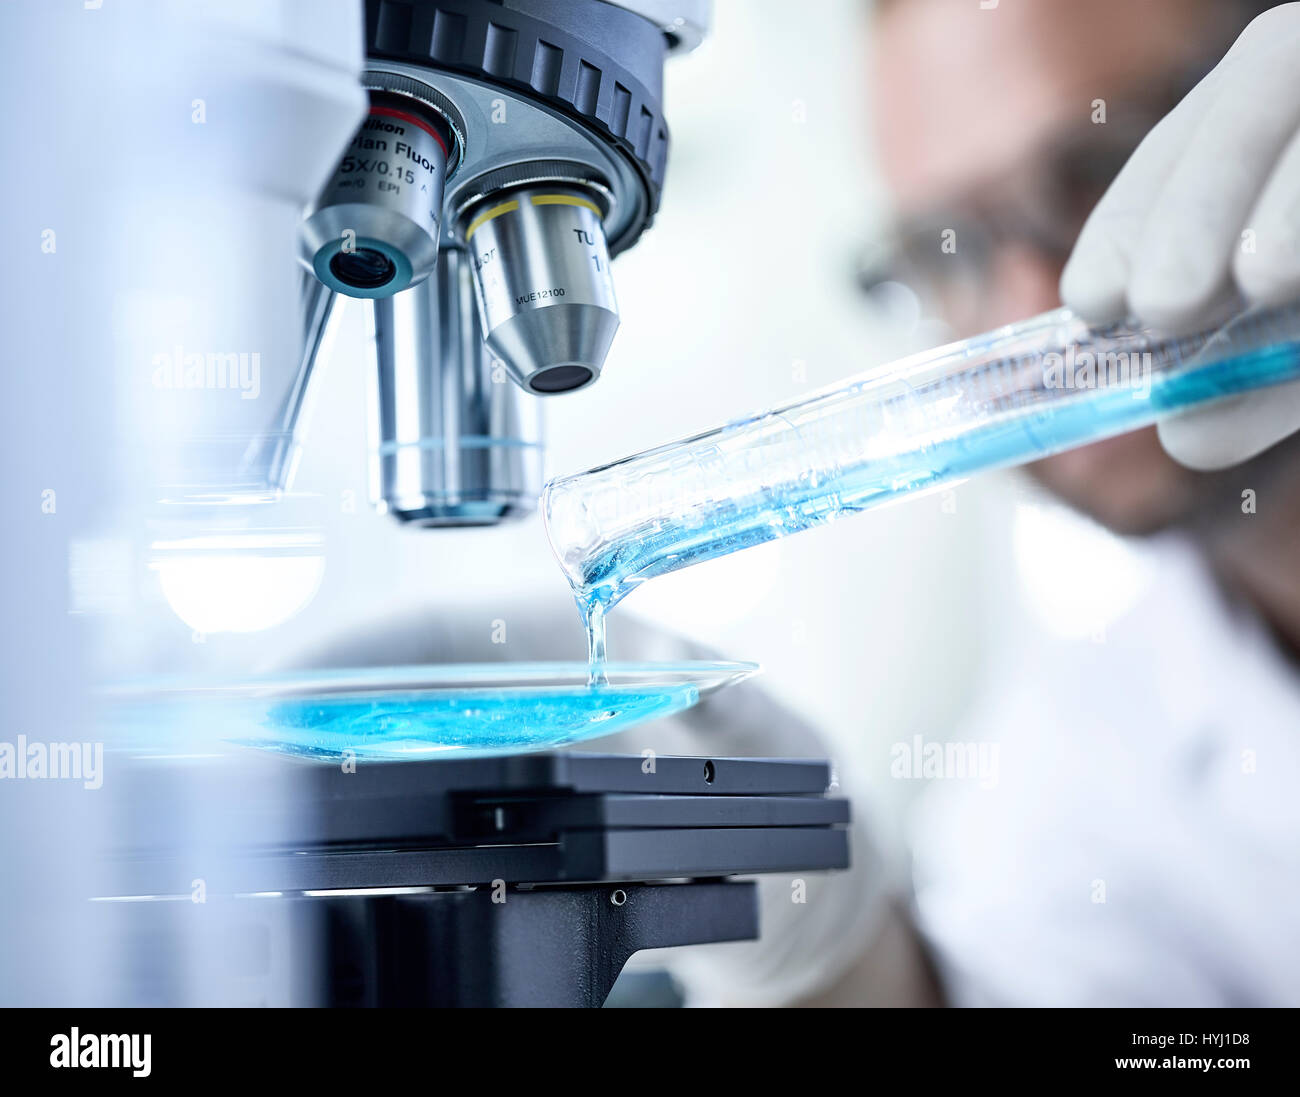 Chemist studying blue liquid under microscope, Austria - Stock Image